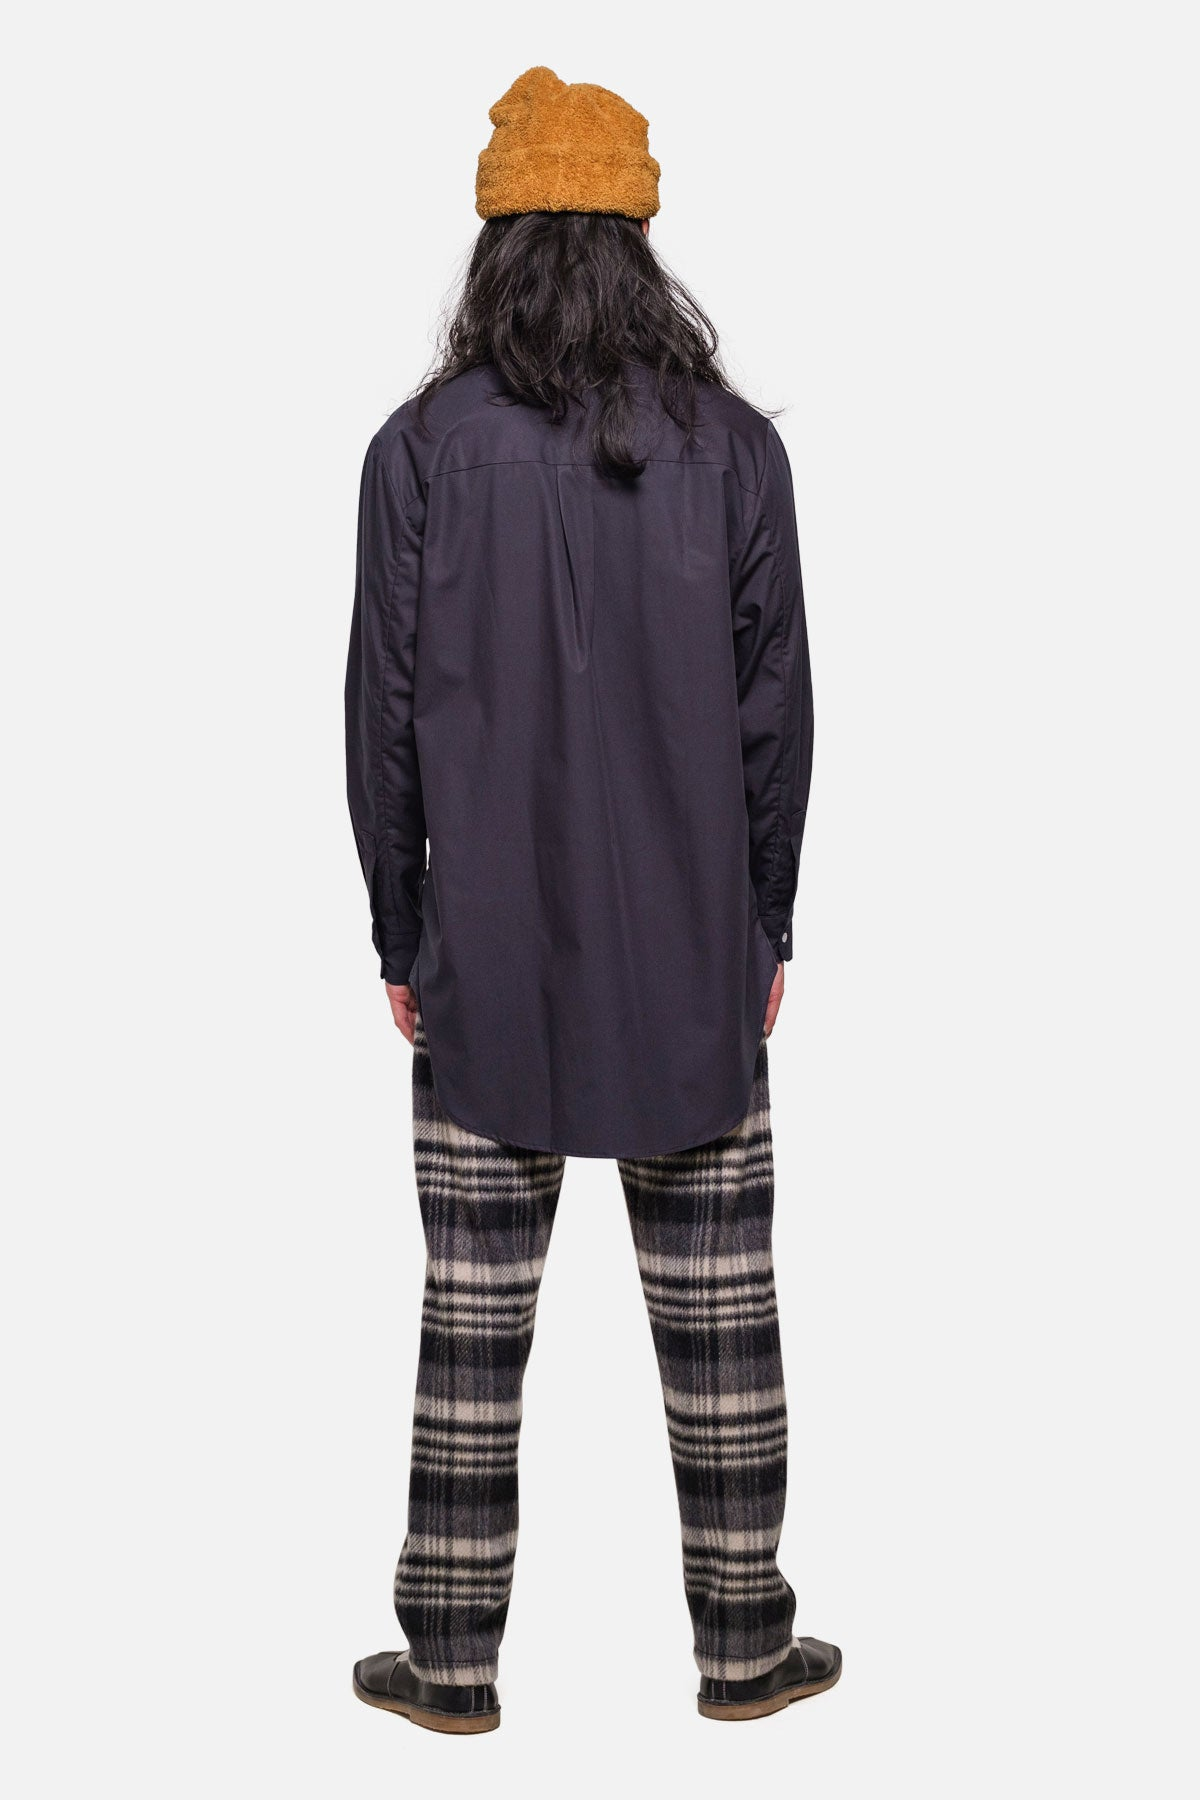 SHOREDITCH TUNIC IN NAVY POPLIN - Fortune Goods